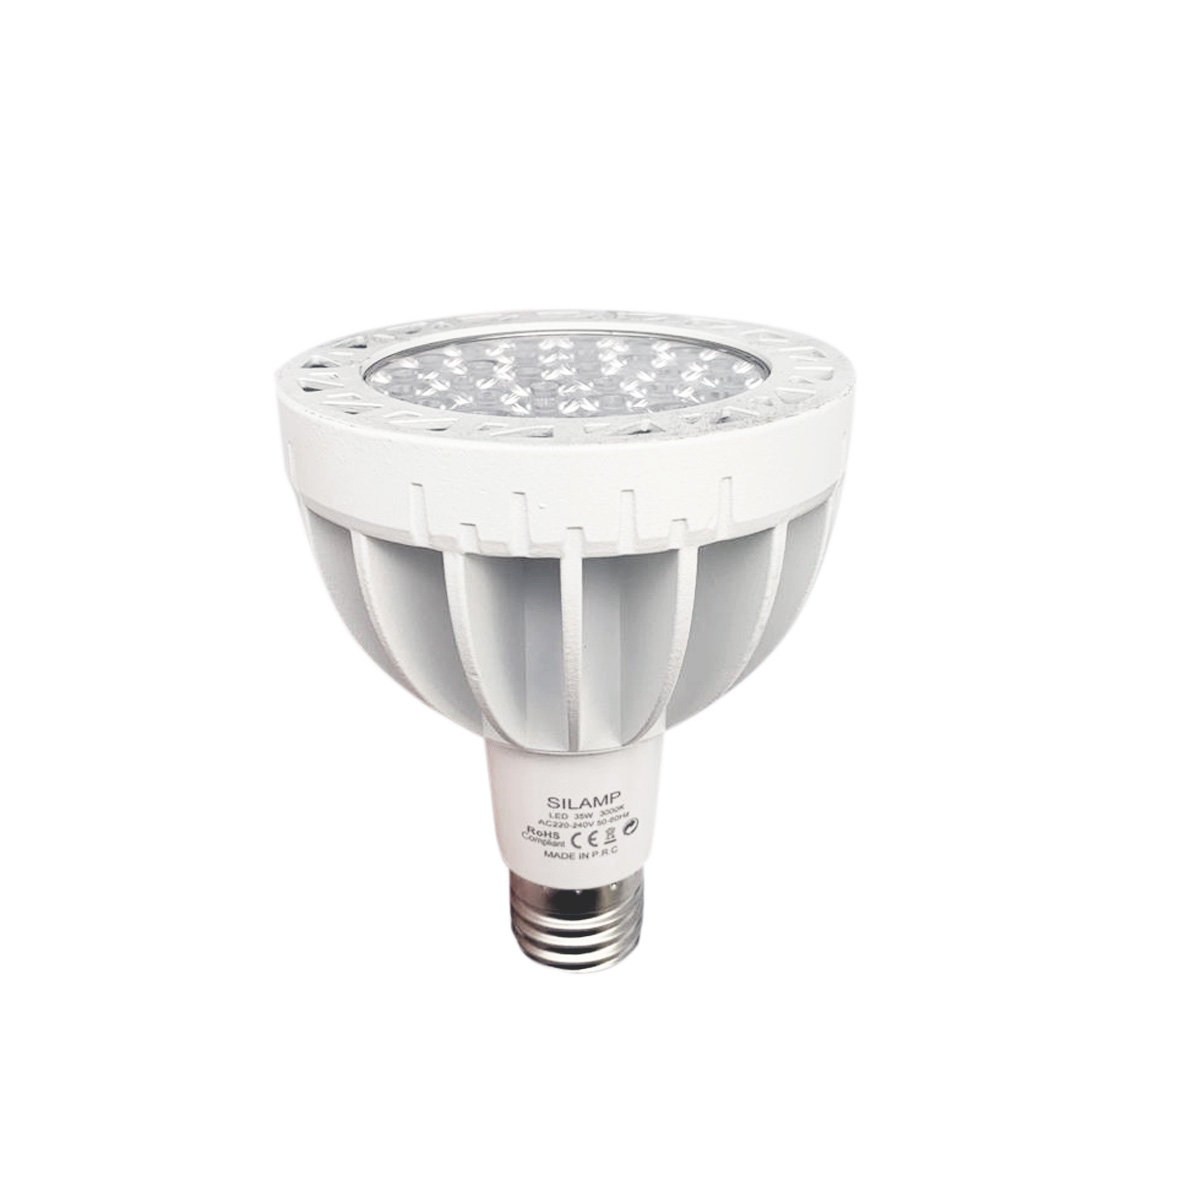 LED bulb E27 35W PAR30 LED Light Bulb Lamp Silamp hot and neutral